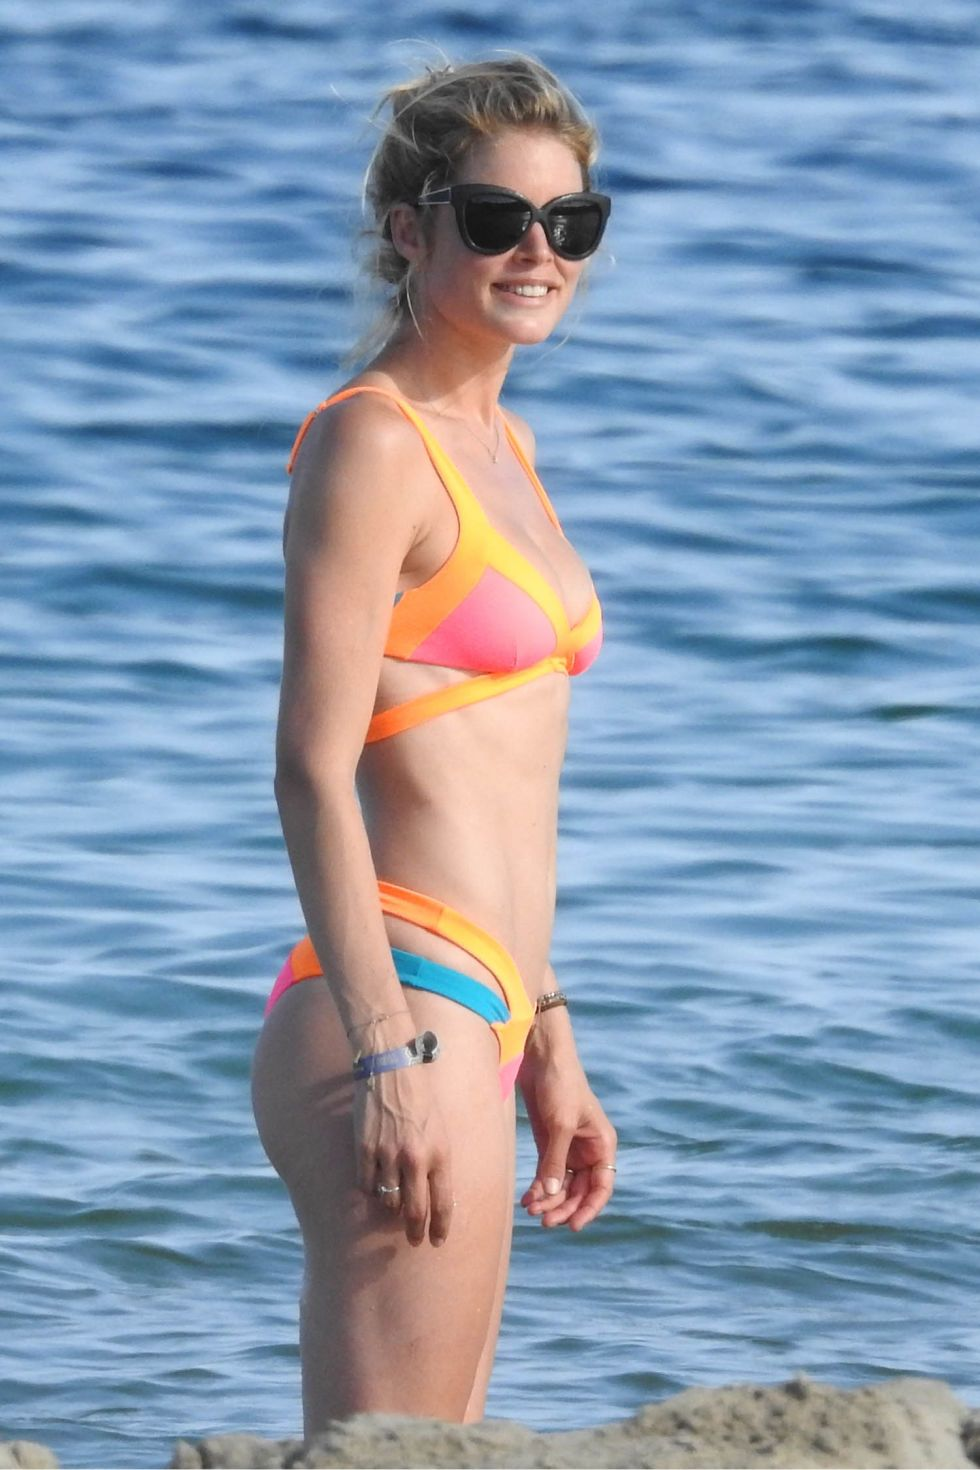 <p><strong>What: </strong>Agent Provocateur</p><p><strong>Where: </strong>Ibiza</p><p><strong>Why: </strong>Kroes channels the electric spirit of the Spanish island in an neon color-blocked bikini. </p>